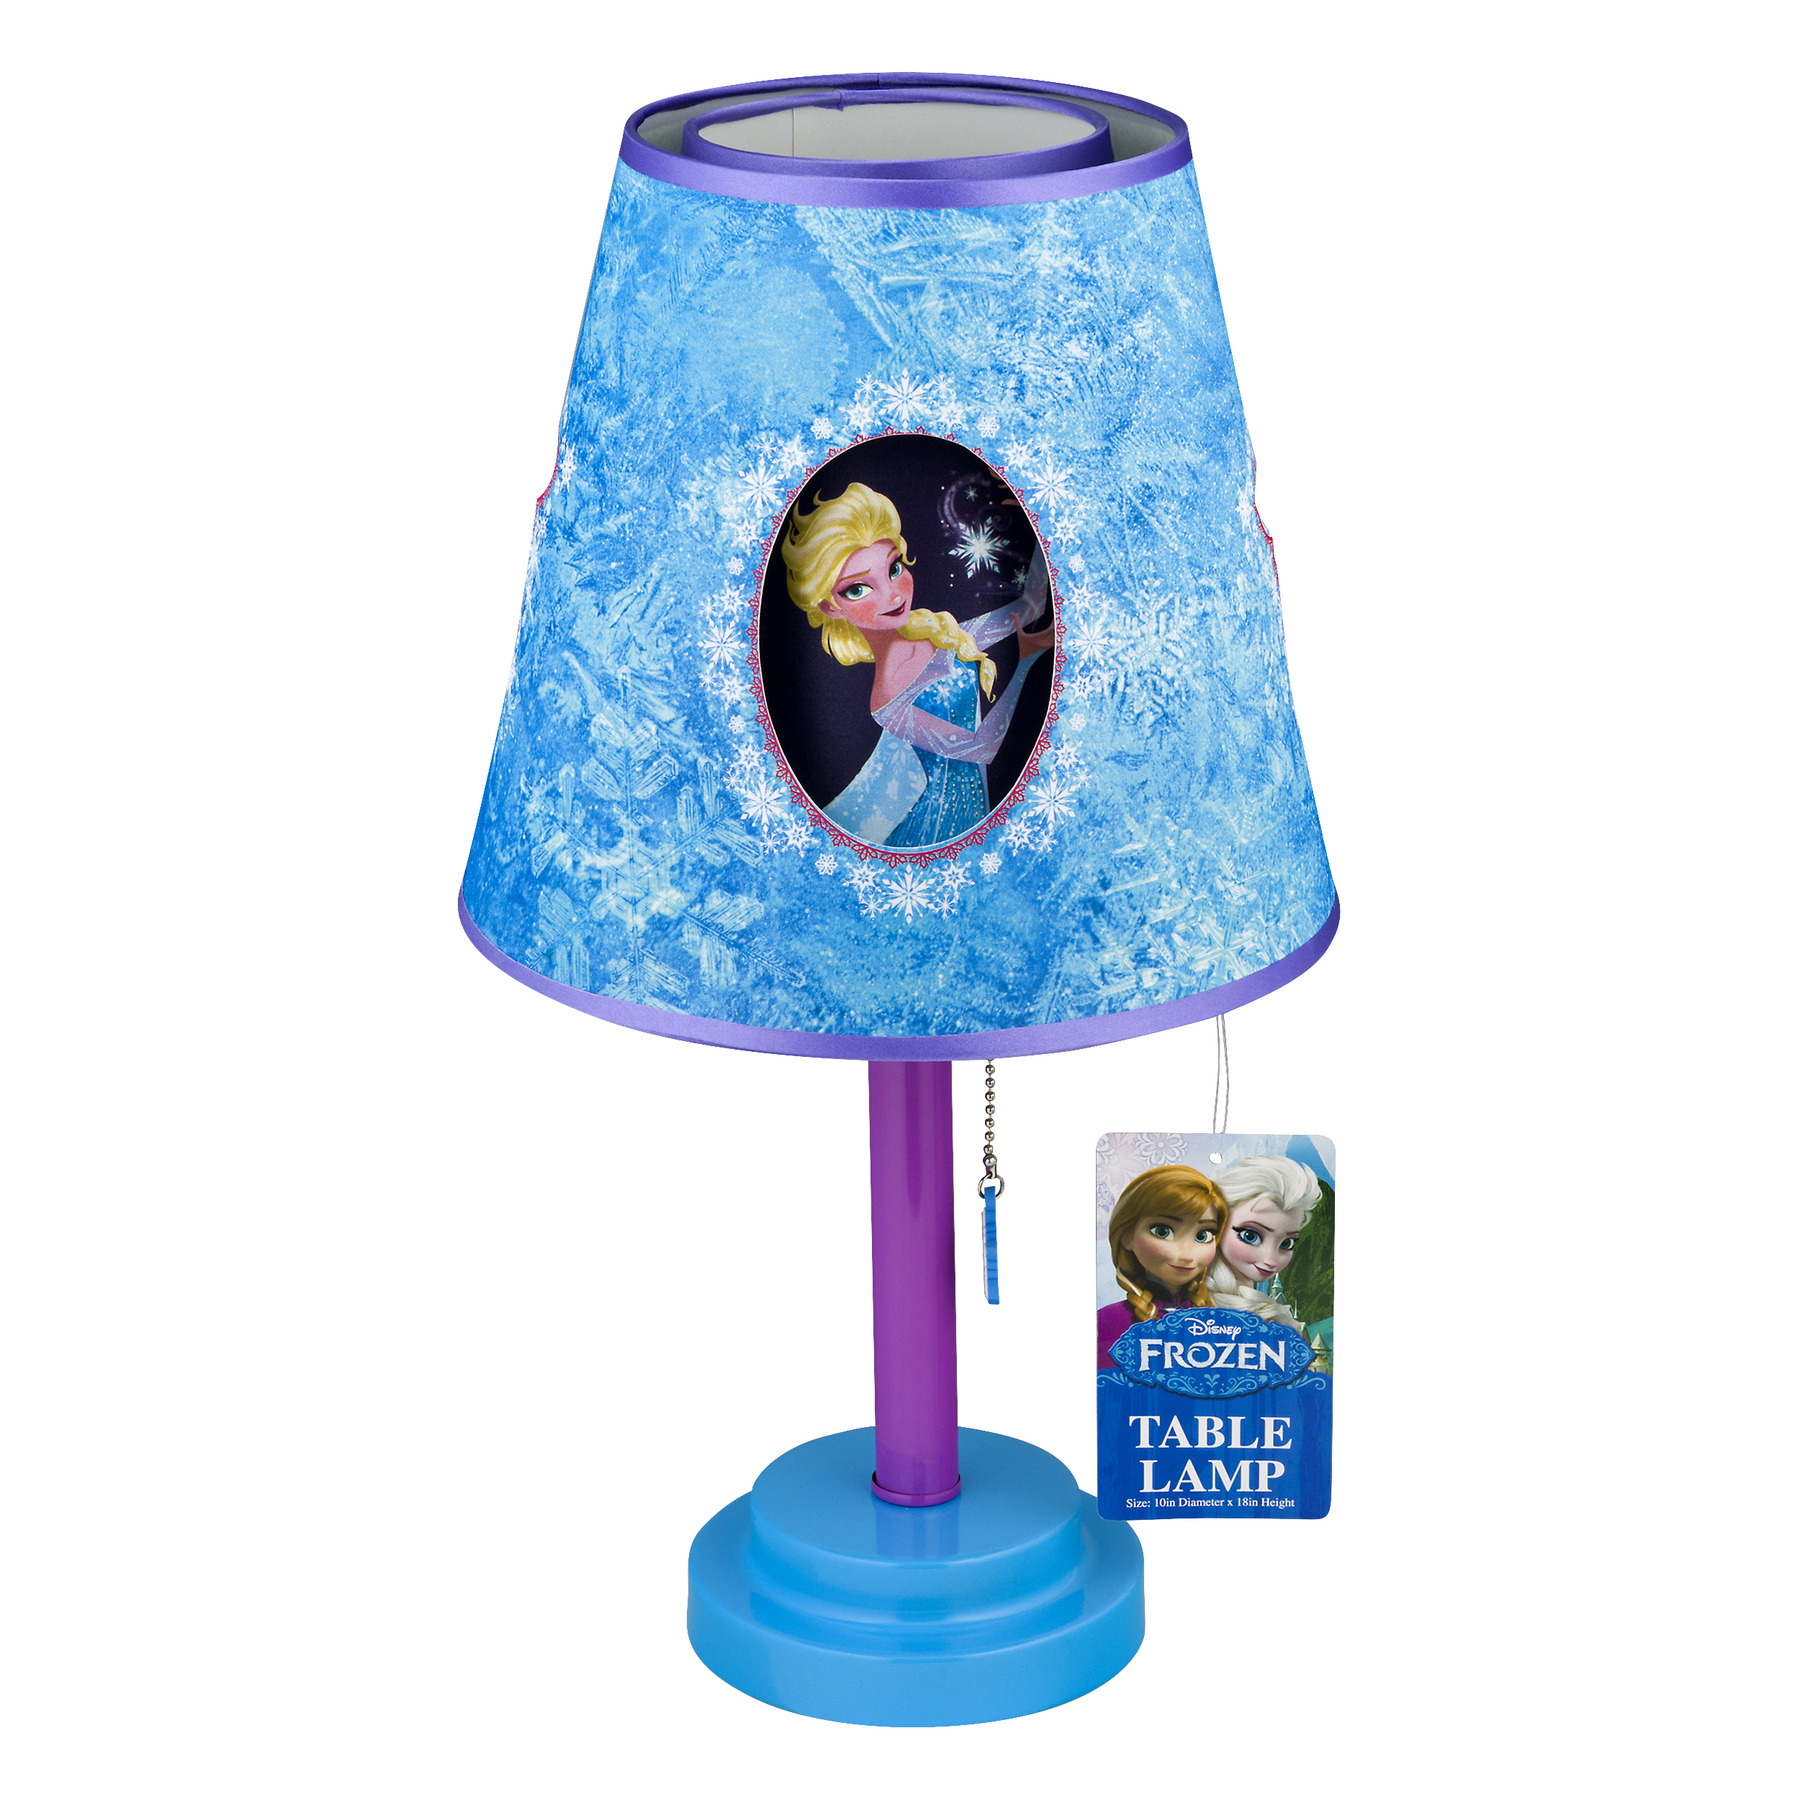 Disney Frozen Table Lamp, 1.0 CT by Idea Nuova